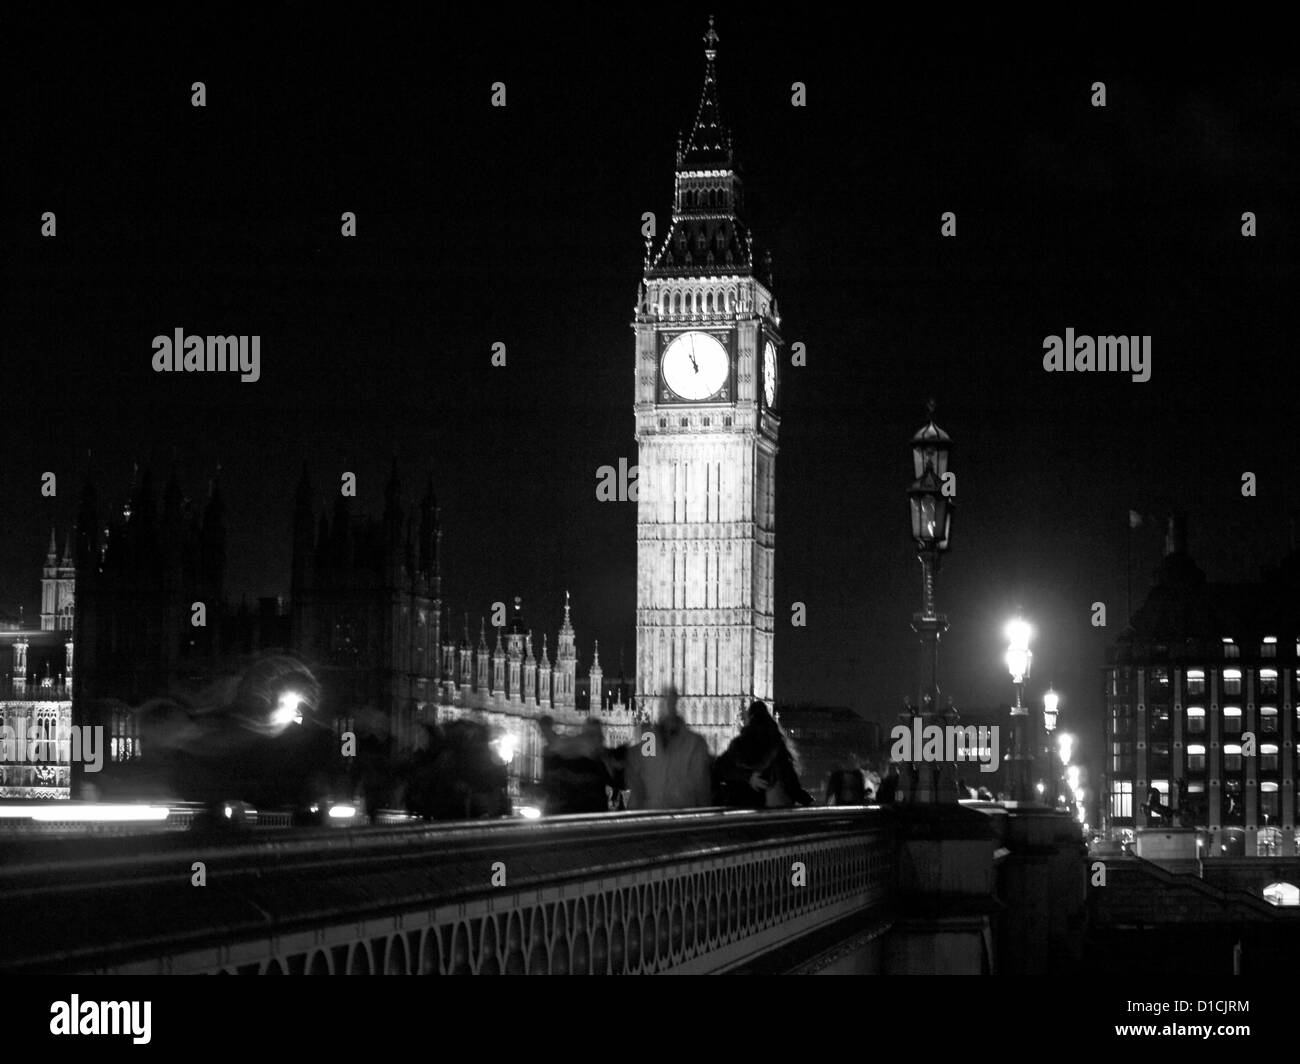 View of Westminster bridge,Big Ben clock tower and the Palace of Westminster (Houses of Parliament), UNESCO World Stock Photo